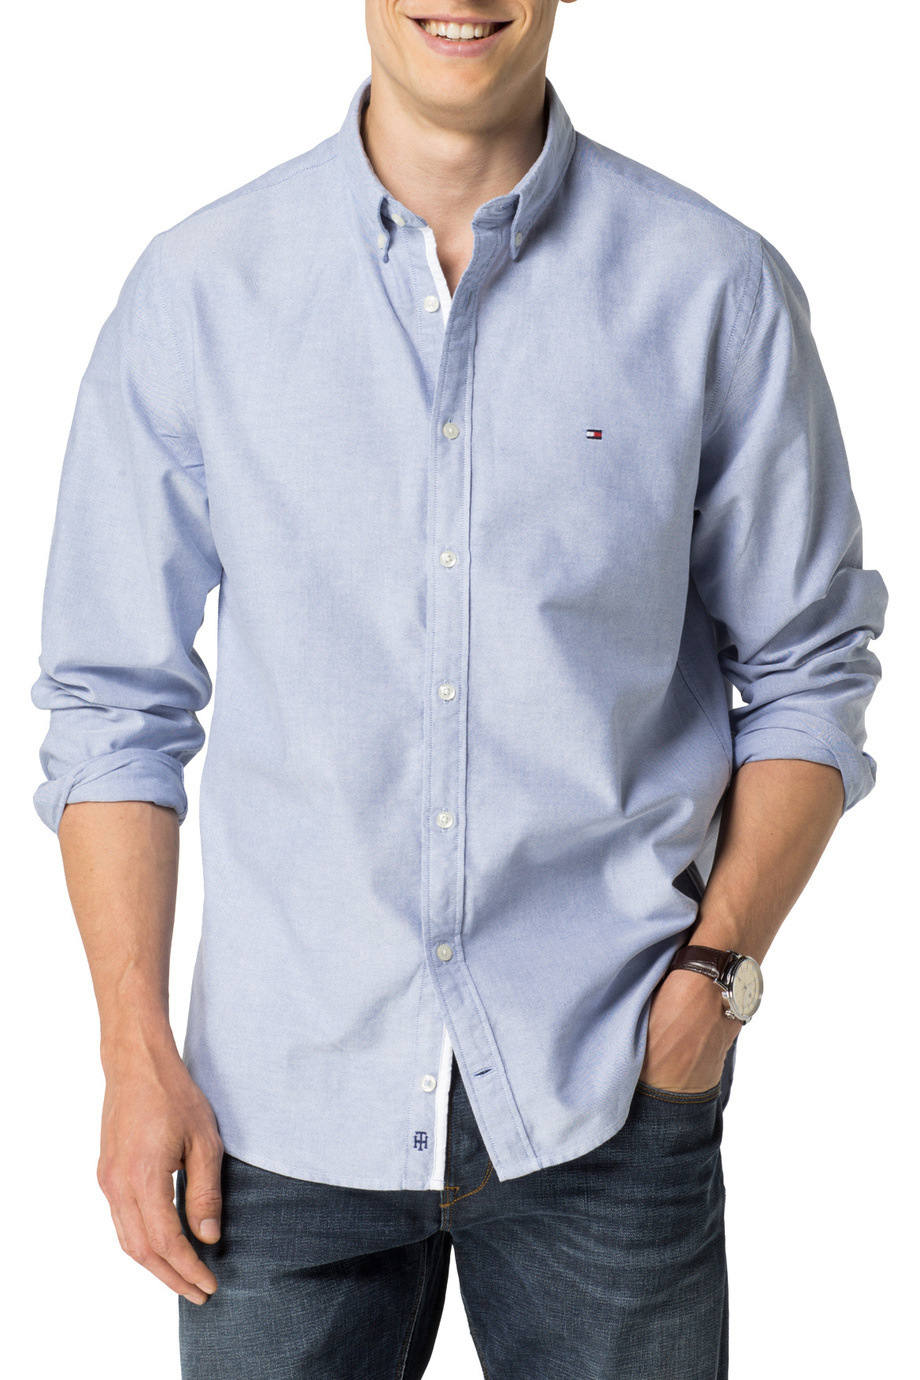 Cheap Top Quality From China Free Shipping Low Price SHIRTS - Shirts Ivy Oxford Recommend dwX11Kjlyq